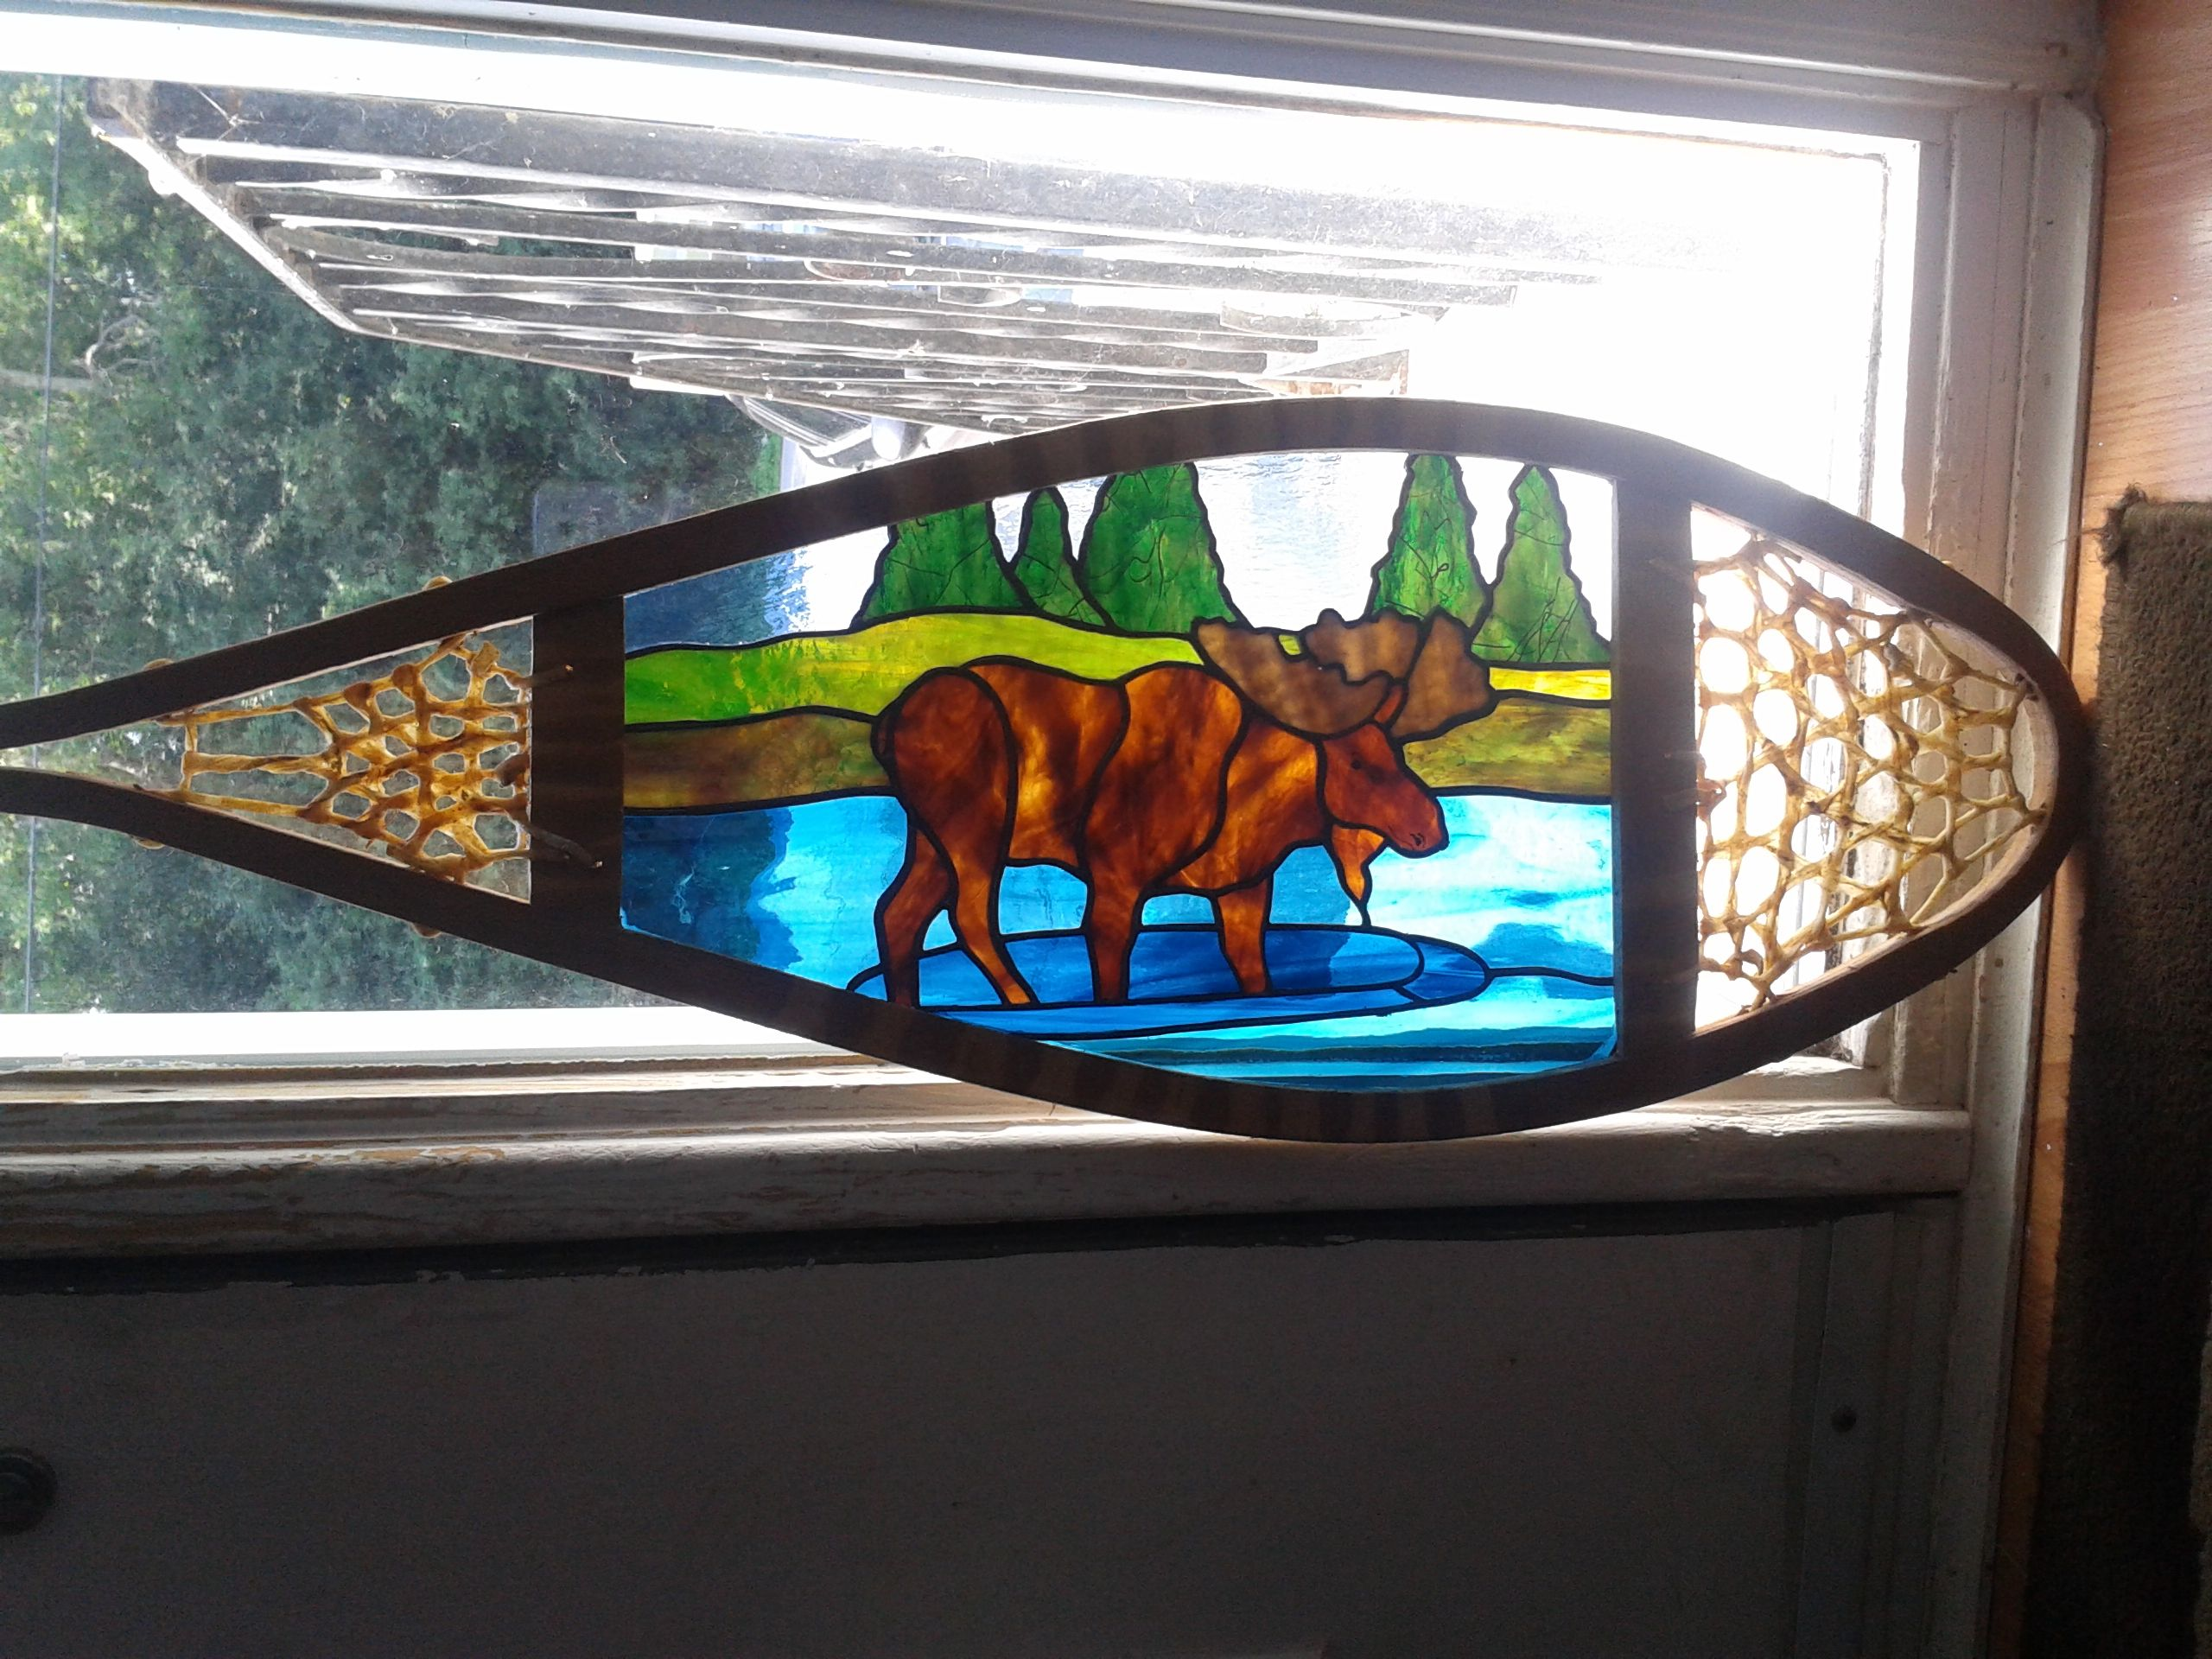 Beach theme decoration stained glass window panels arts crafts - Stained Glass Moose Snowshoe